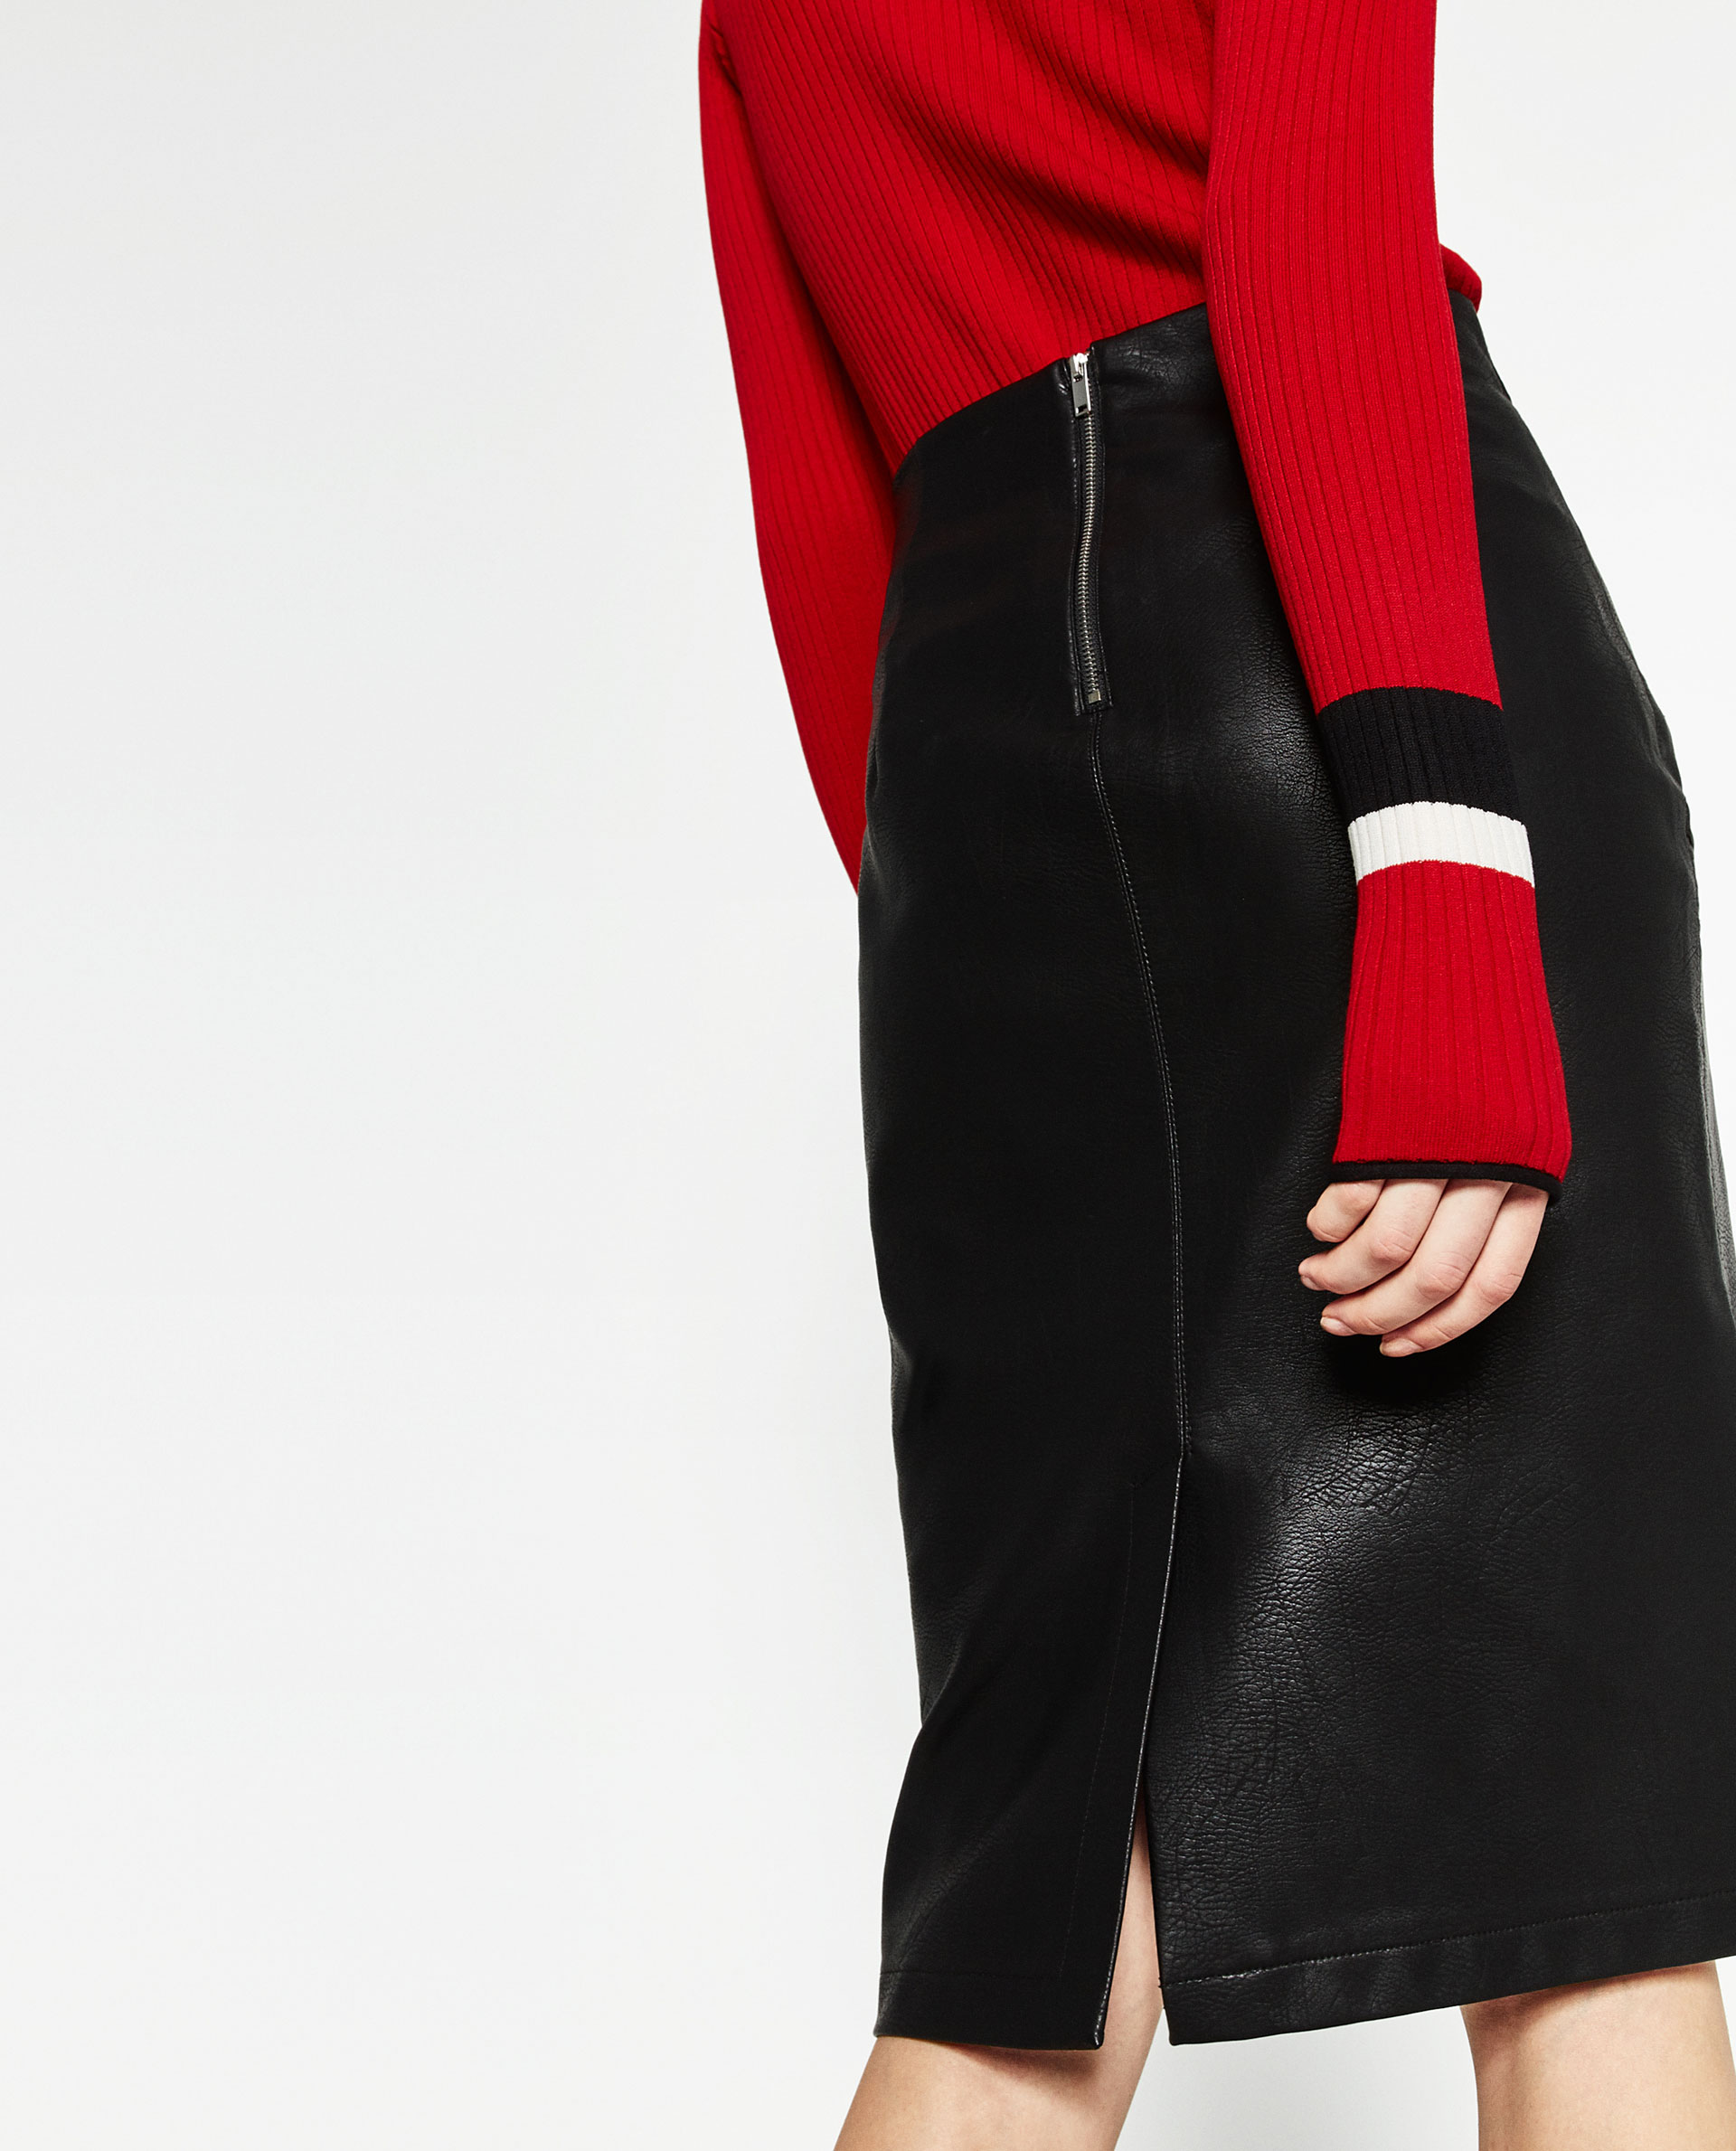 The Faux Leather Pencil Skirt That Passes for the Real Deal - Racked